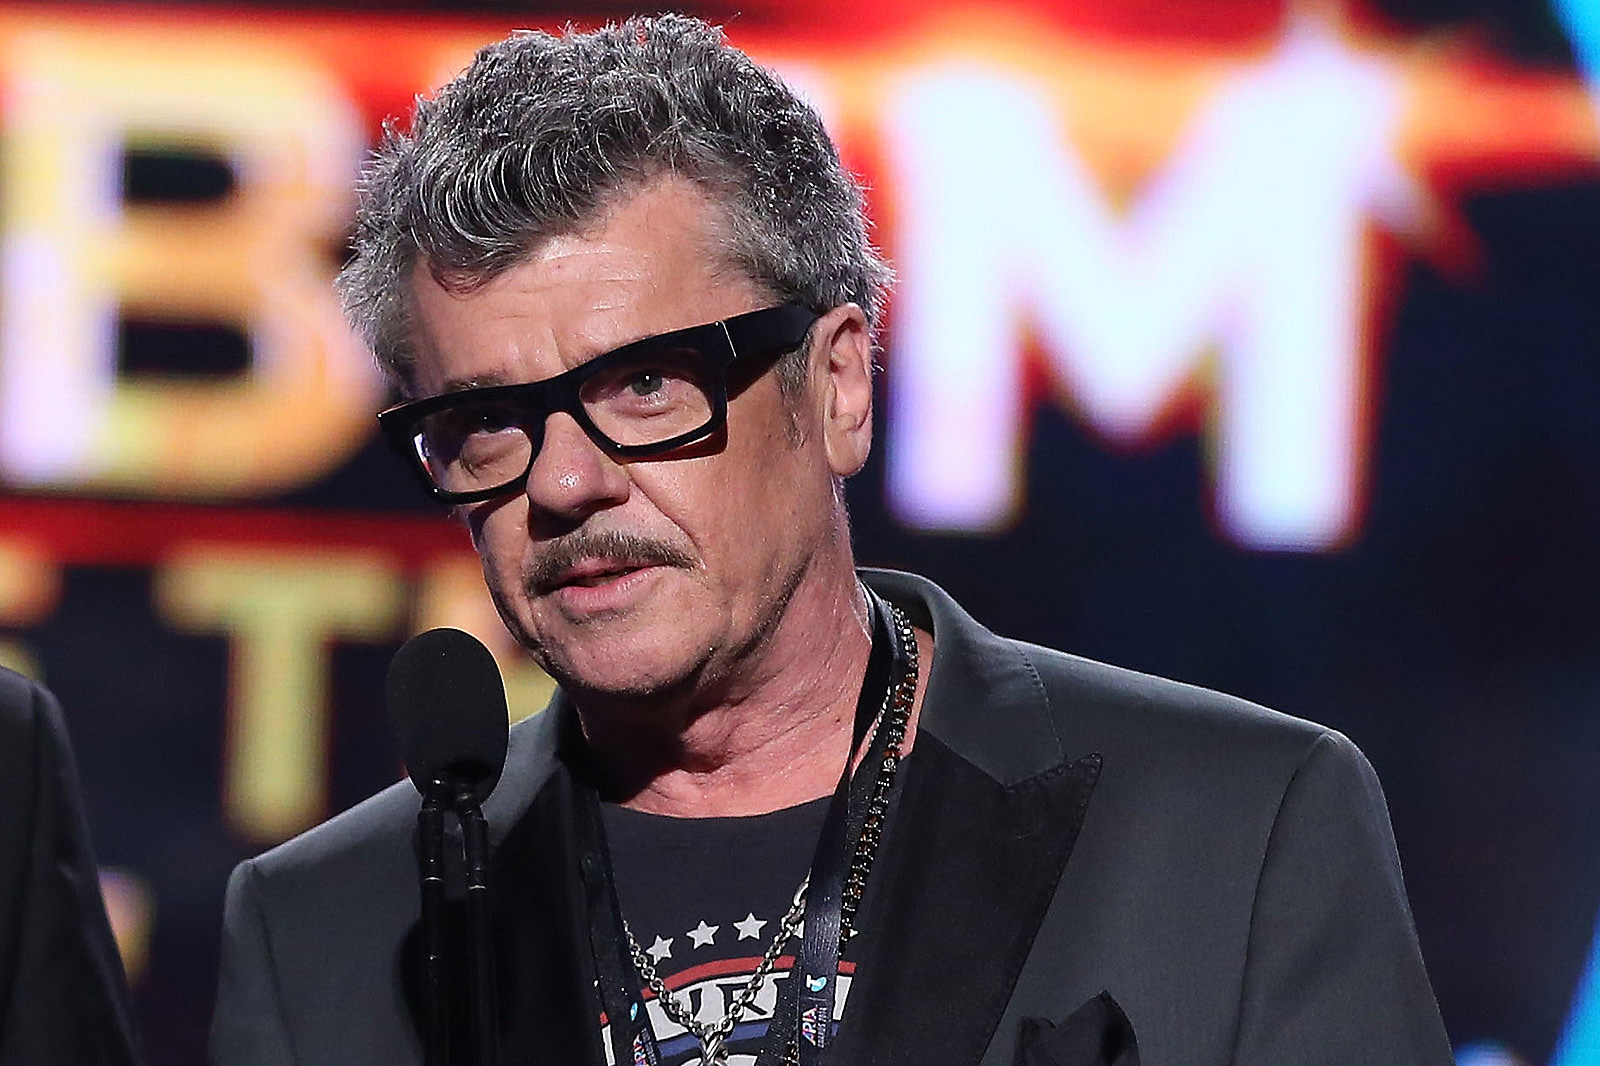 INXS's Tim Farriss Lost 'More Than a Finger' in Boat Accident